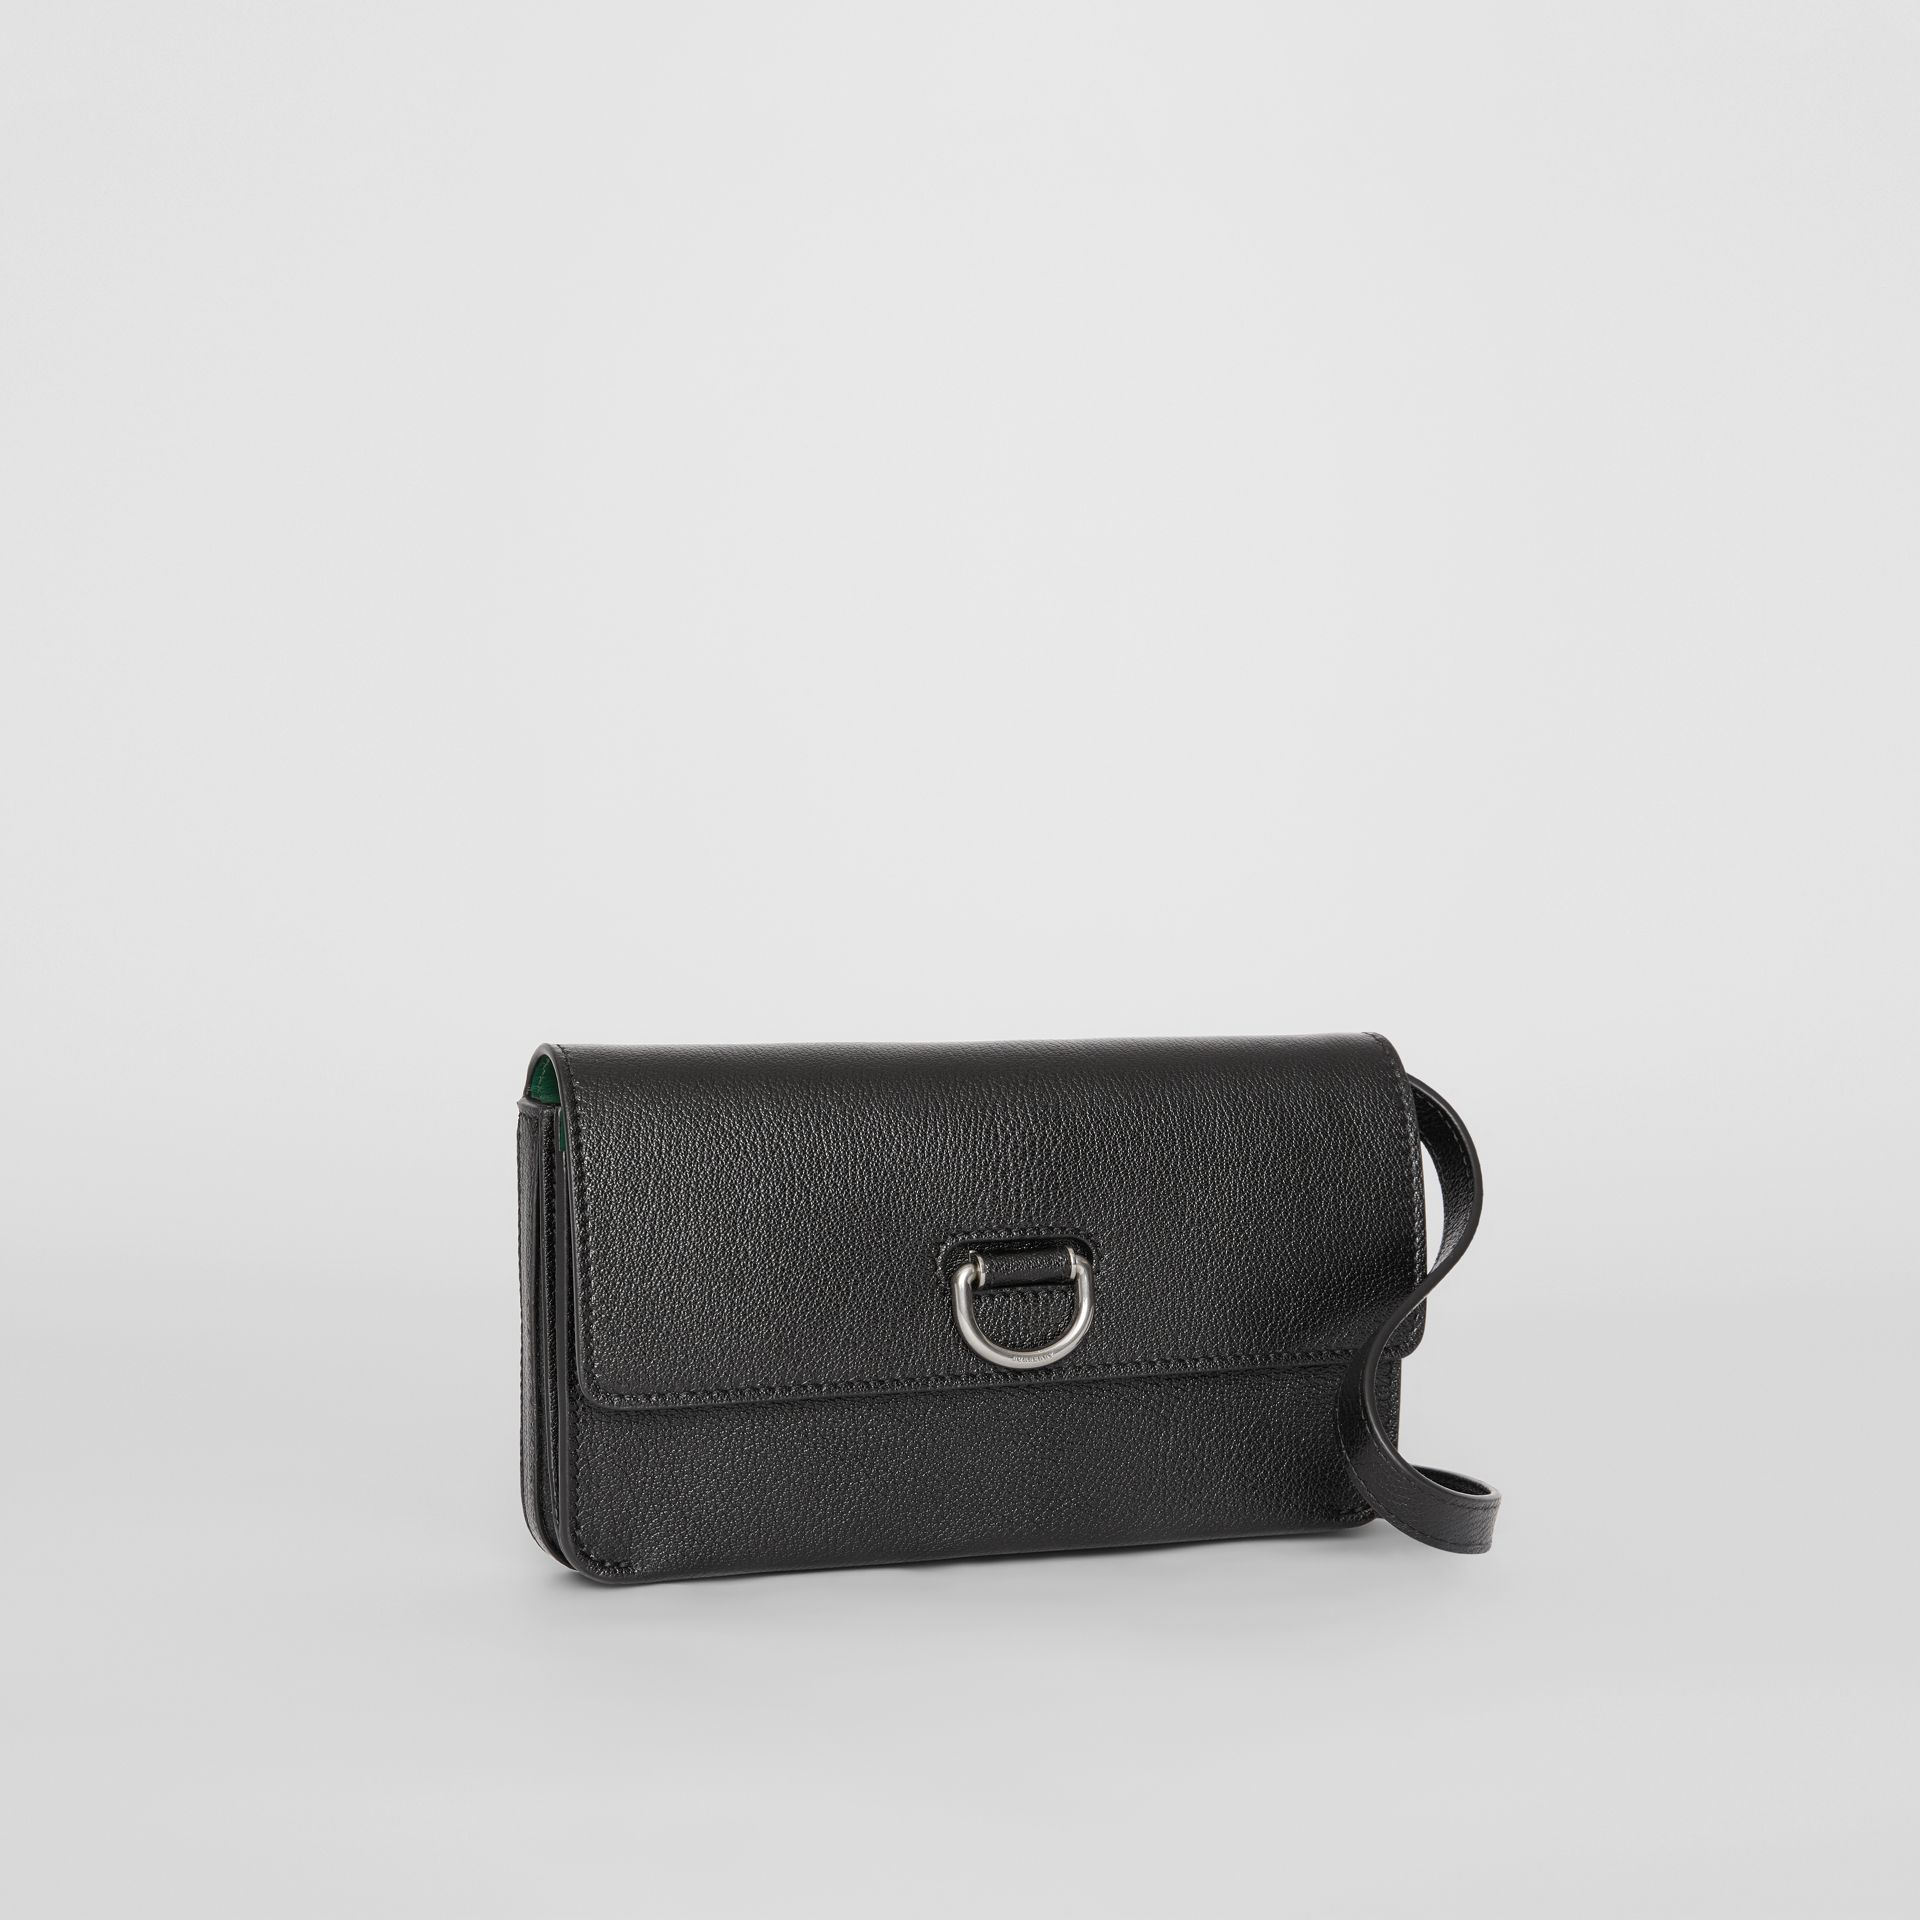 D-ring Leather Wallet with Detachable Strap in Black - Women | Burberry United Kingdom - gallery image 6